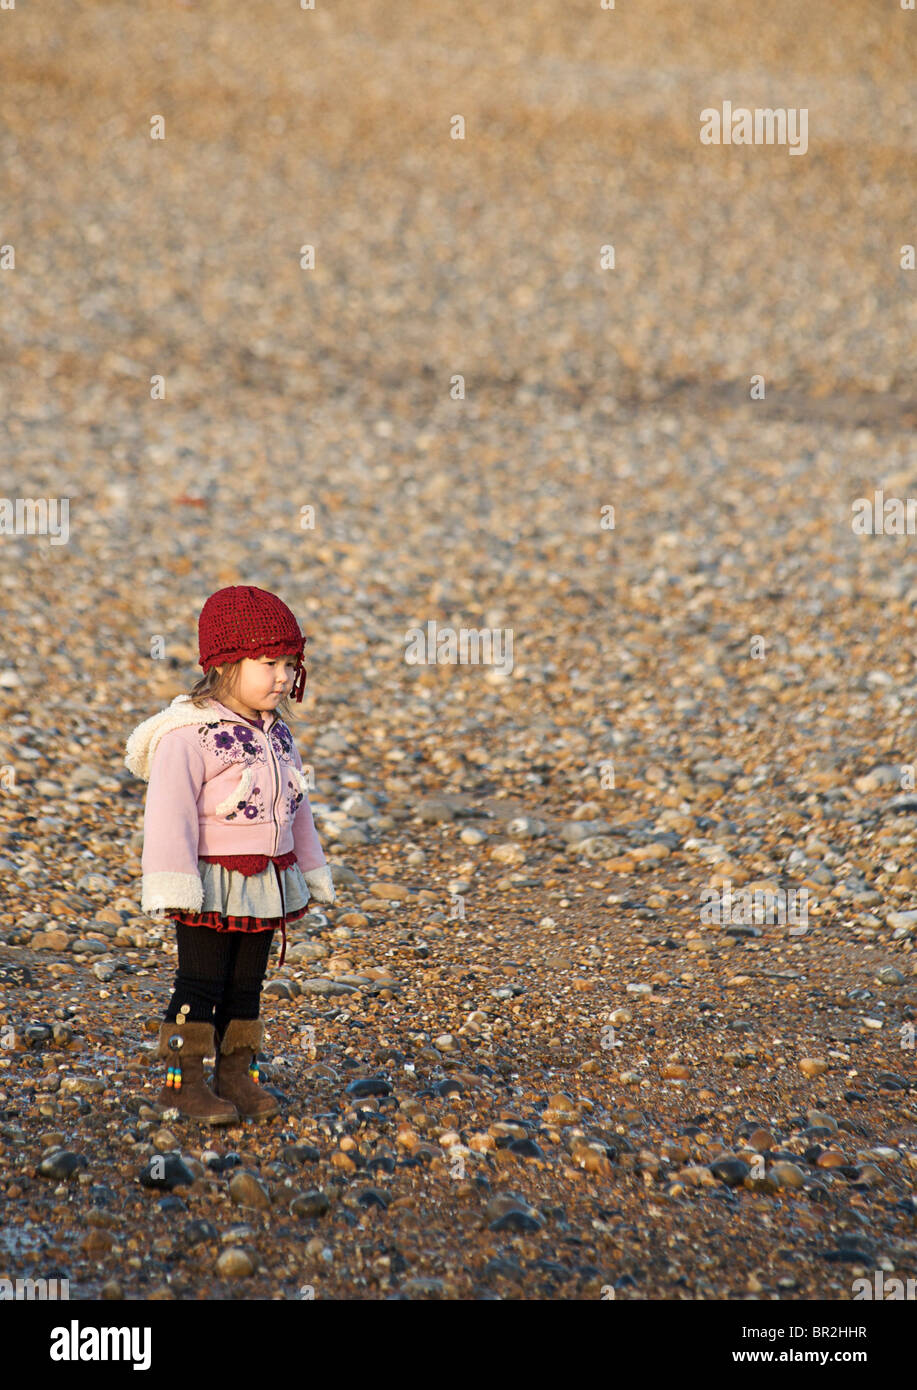 MODEL RELEASED Young girl aged 2 standing on a beach looking seawards. Brighton - Stock Image